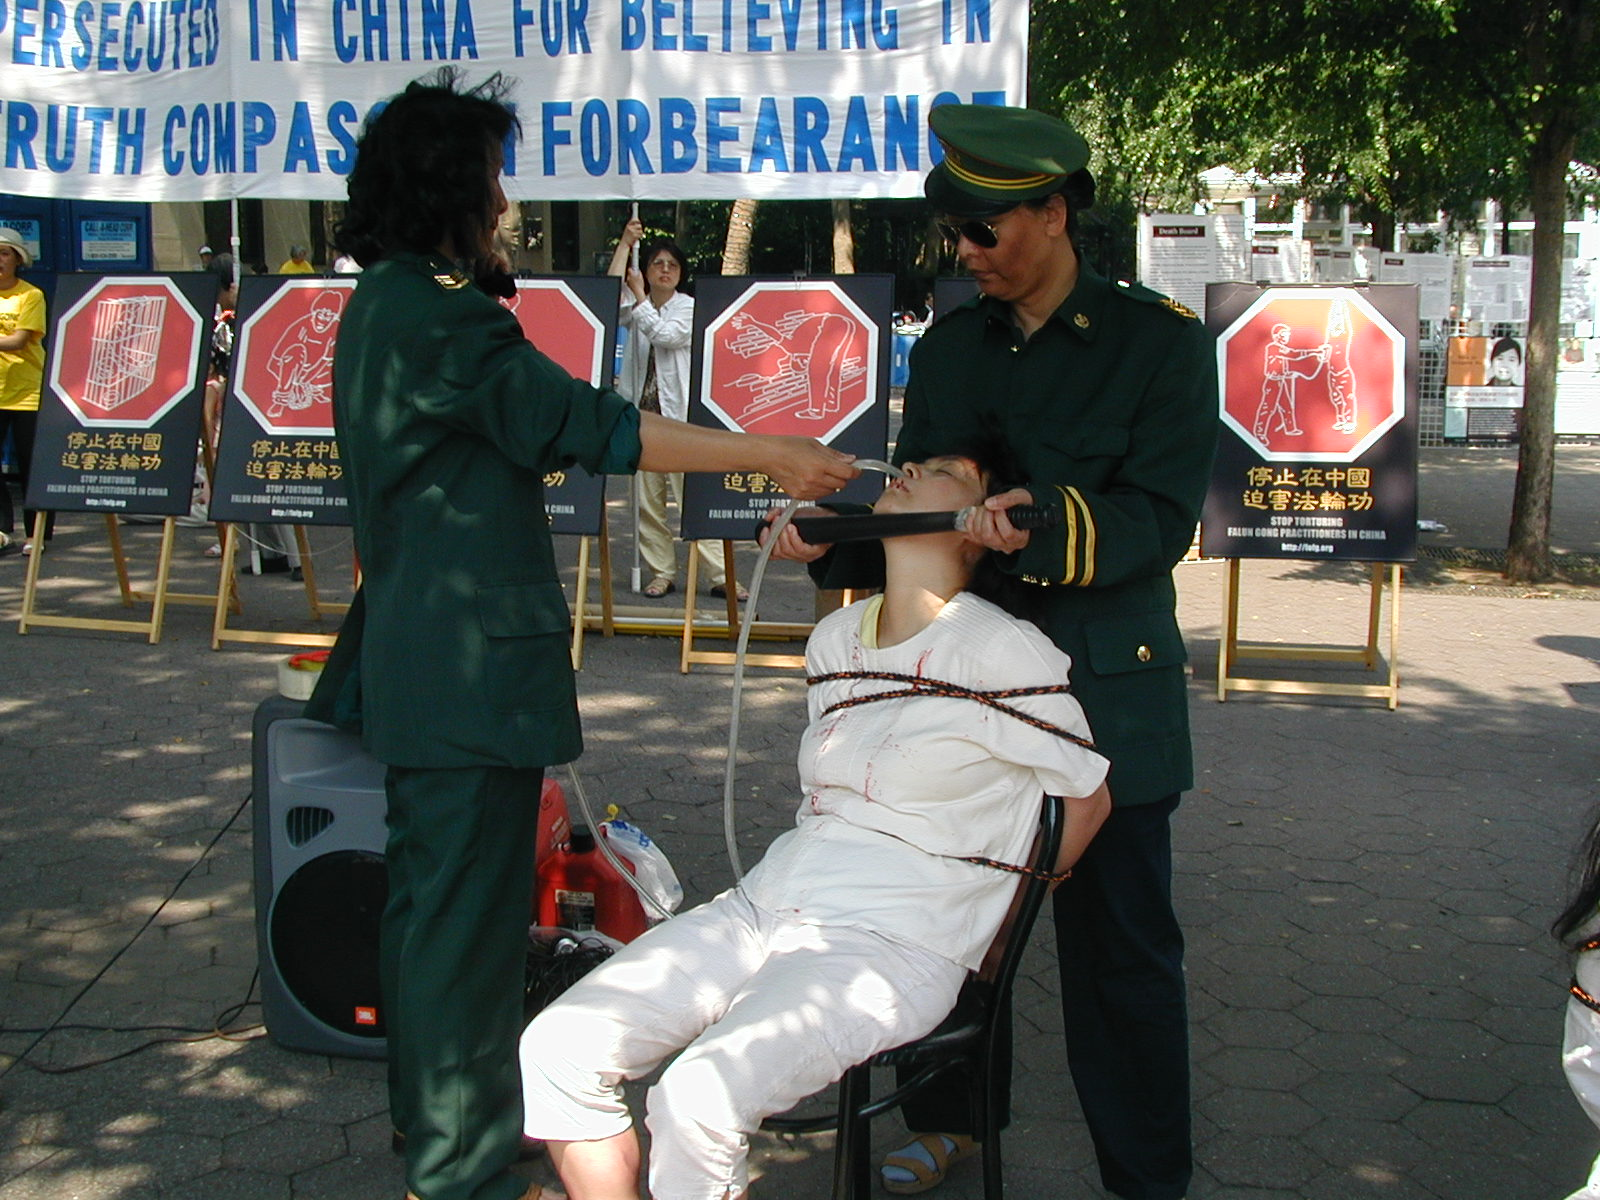 Practitioners Tortured with Carrying a Sword on the Back (Photos)   Falun Dafa - Minghui.org